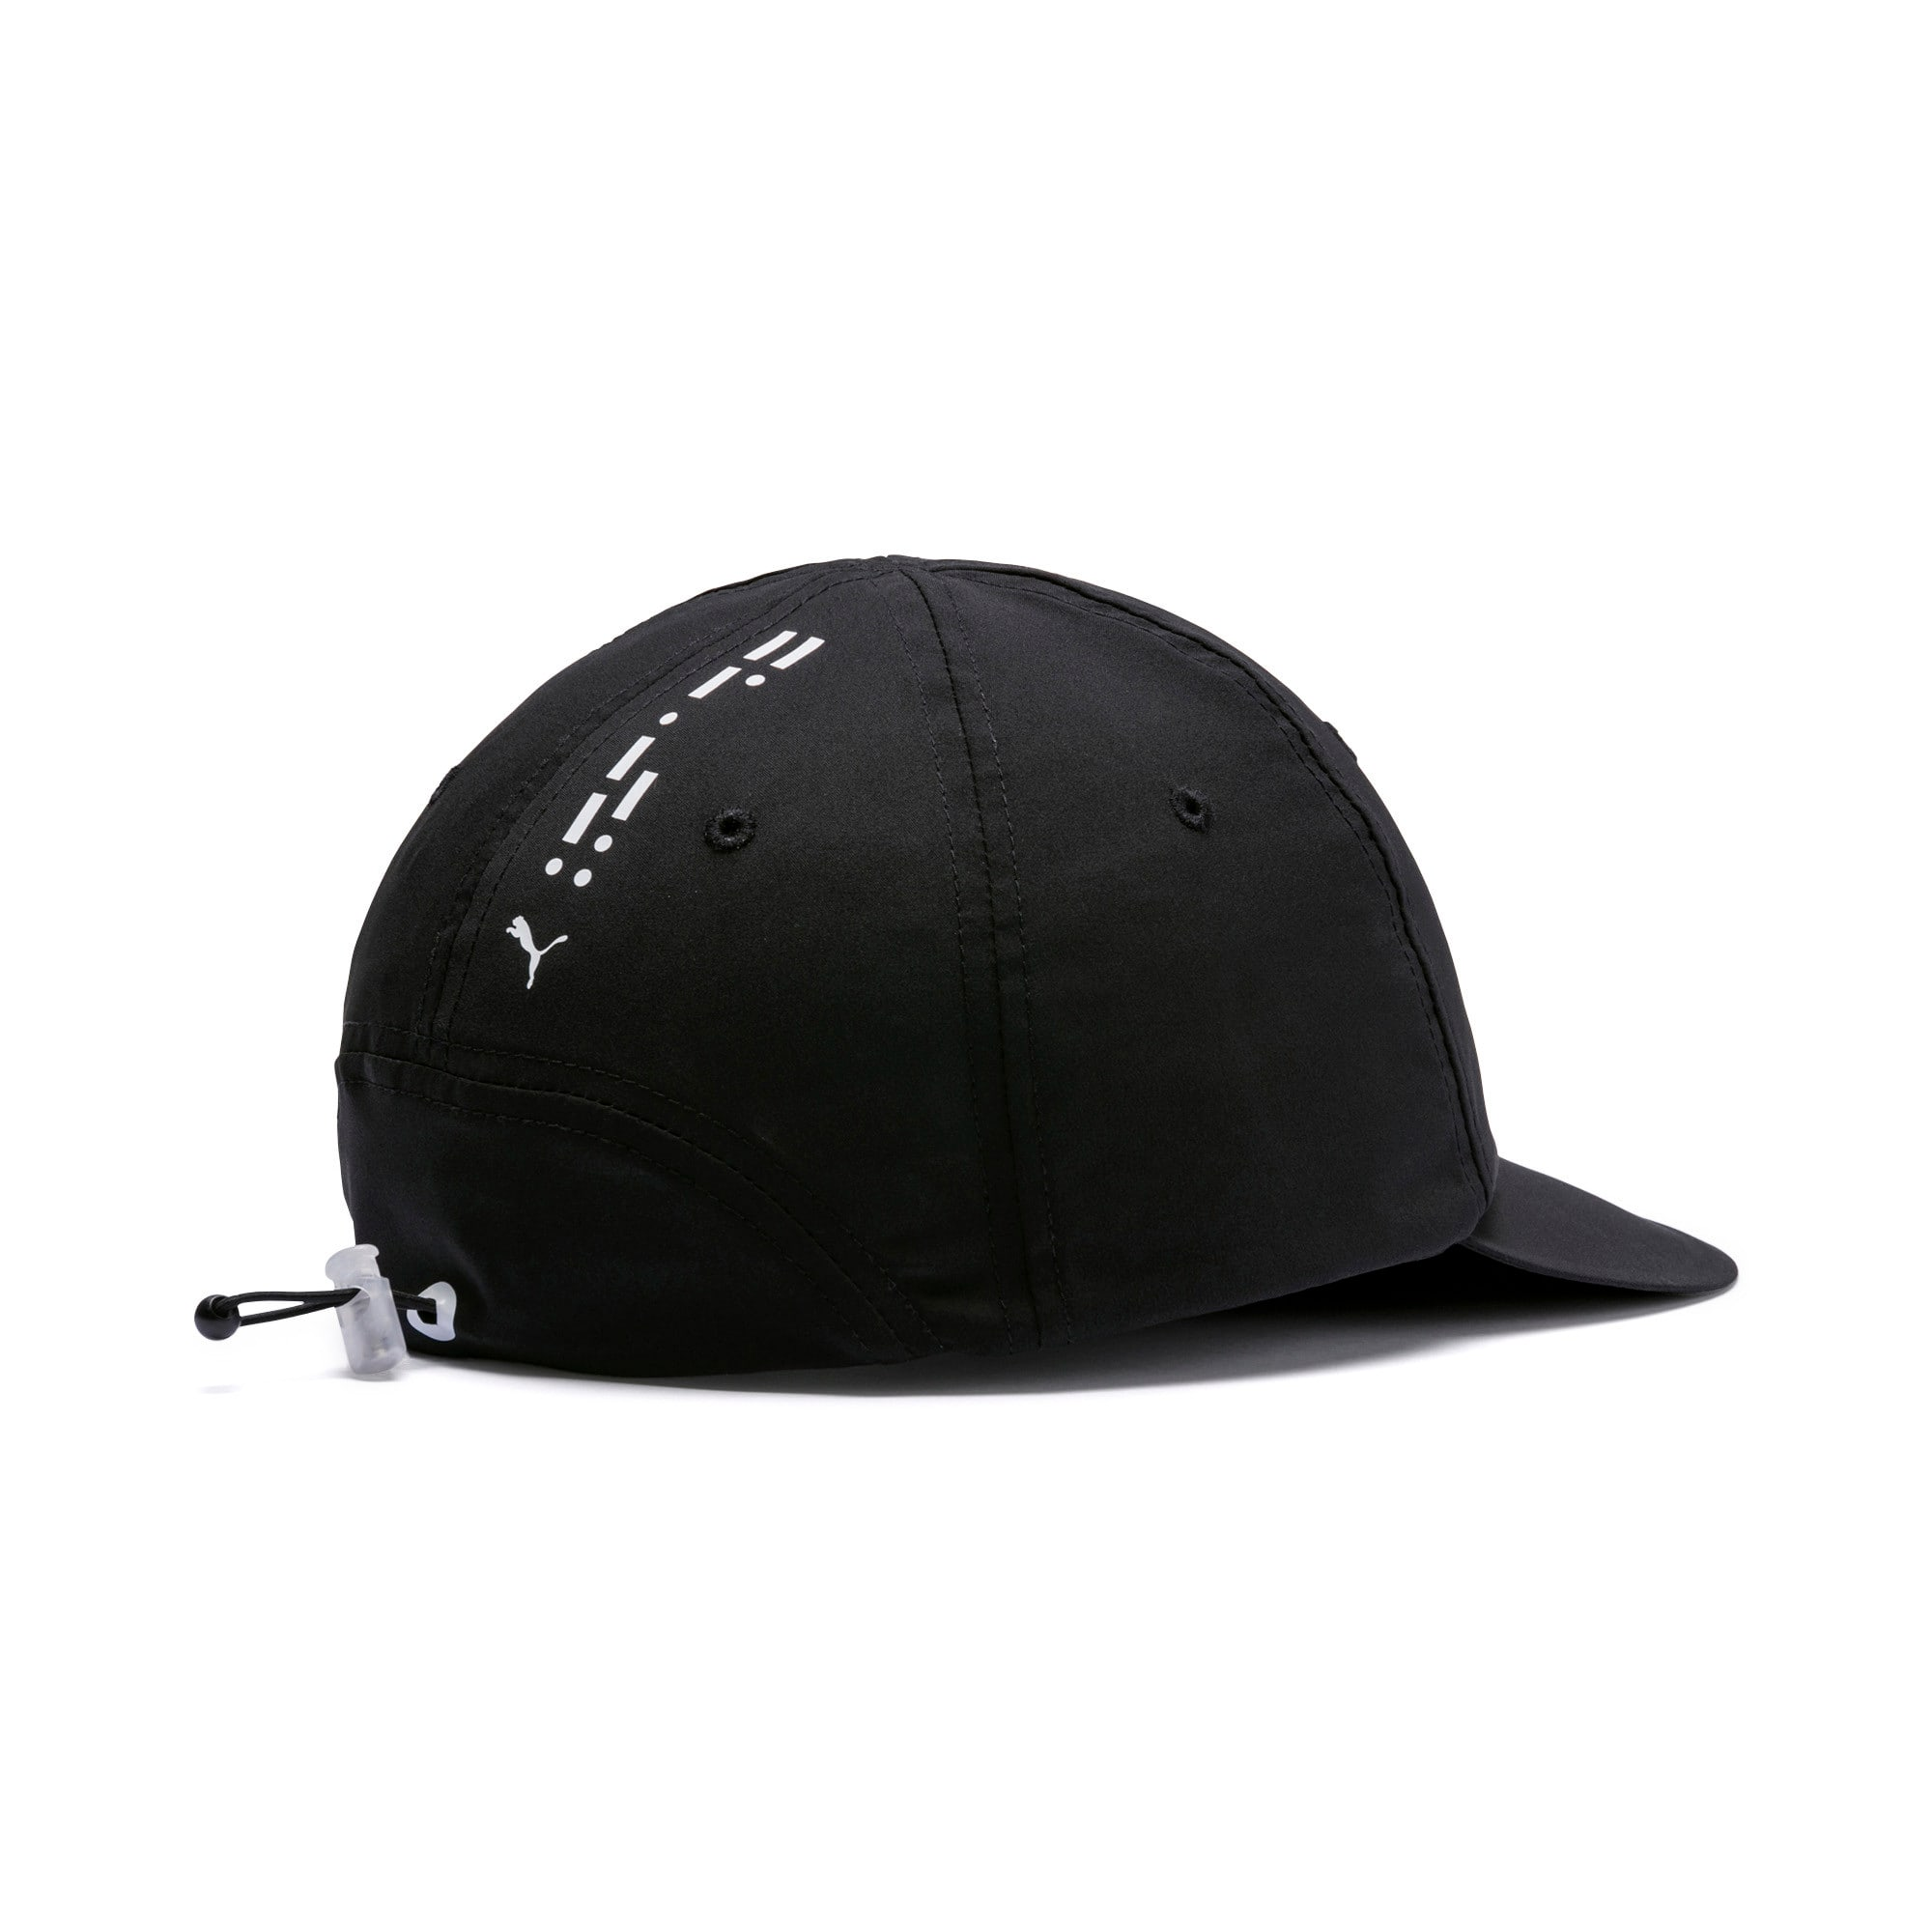 Thumbnail 2 of Epoch Low Curve Cap, Puma Black-Puma White, medium